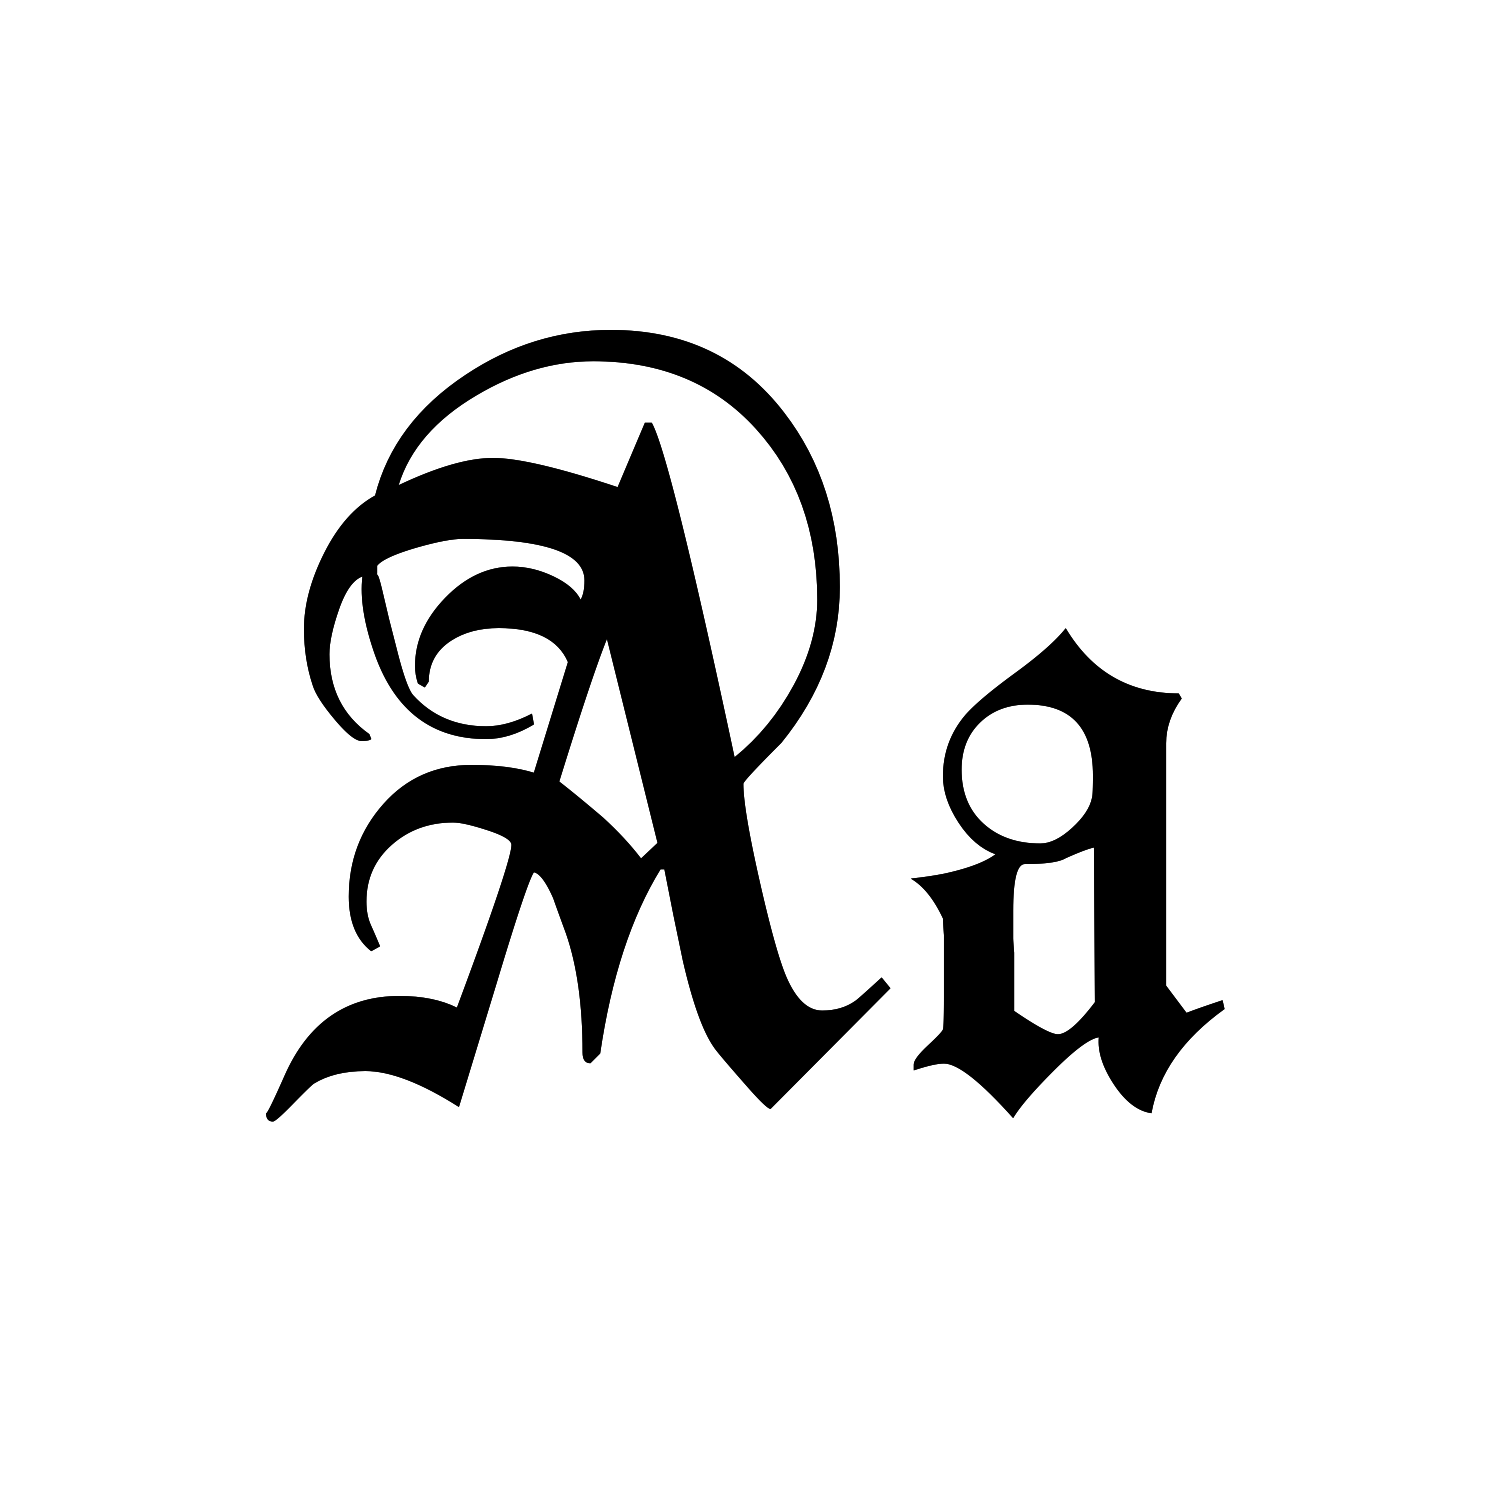 Free Old English Calligraphy Fonts